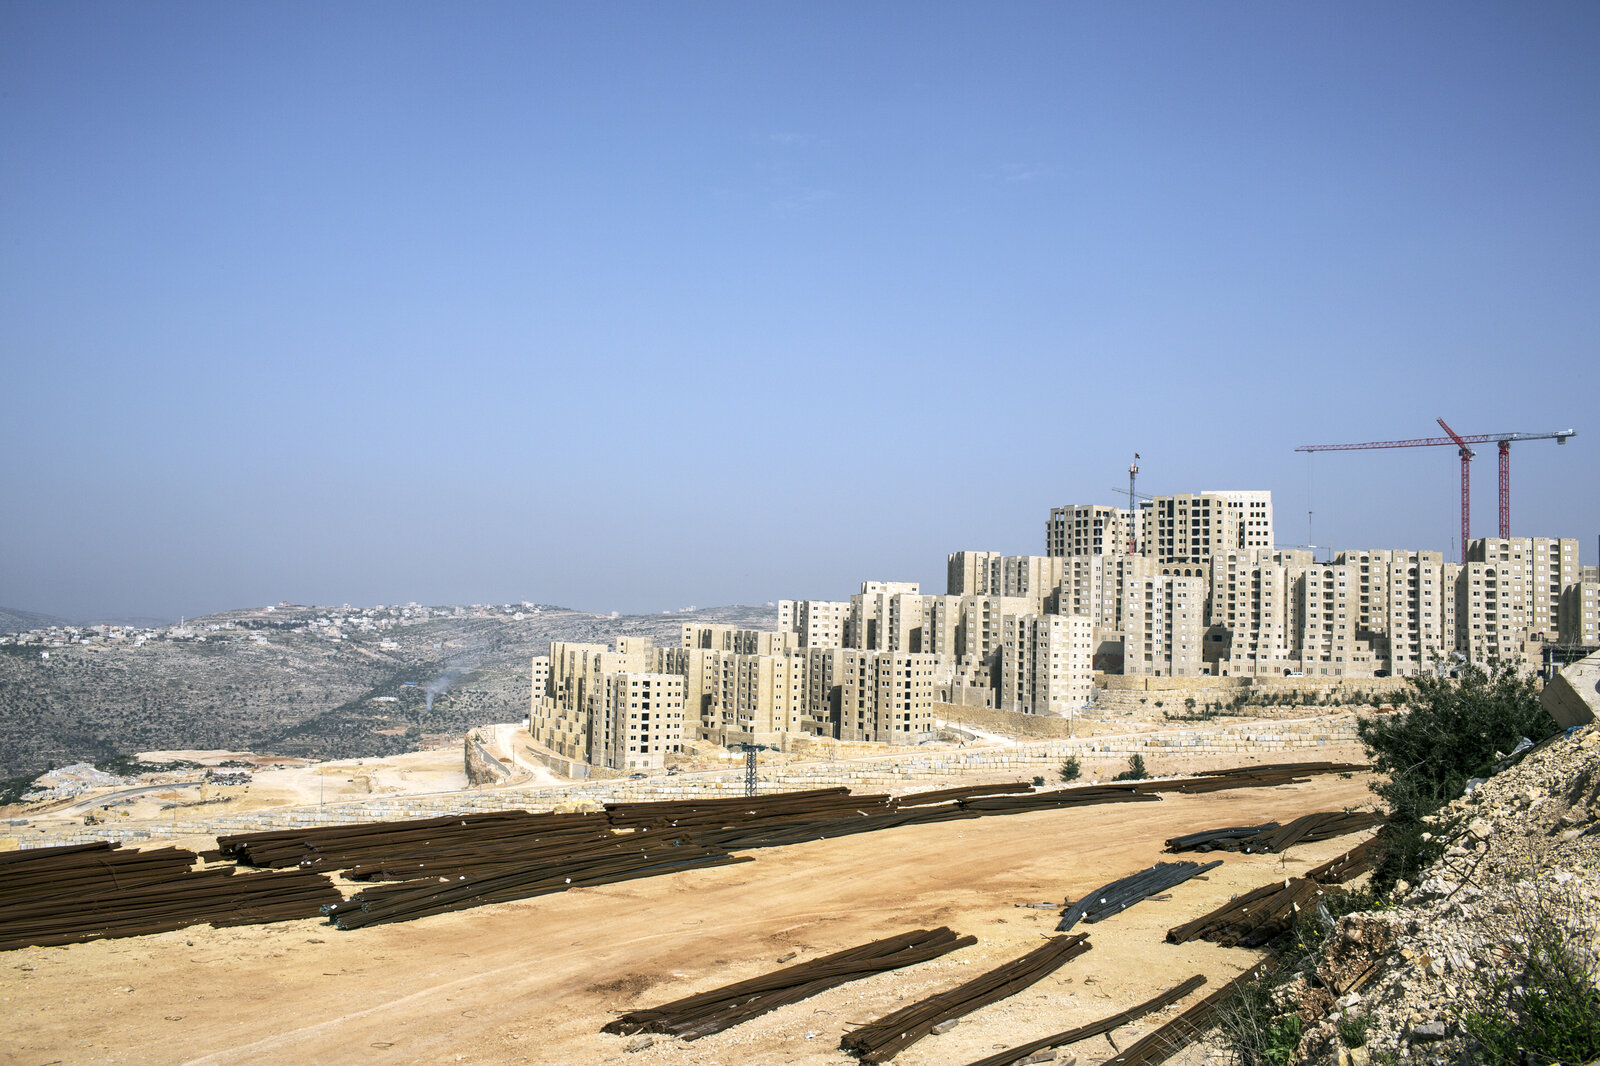 Construction in Rawabi, a Palestinian real estate development in the West Bank near Ramallah. There are some 5,000 homes in the first such planned community in the Palestinian areas.